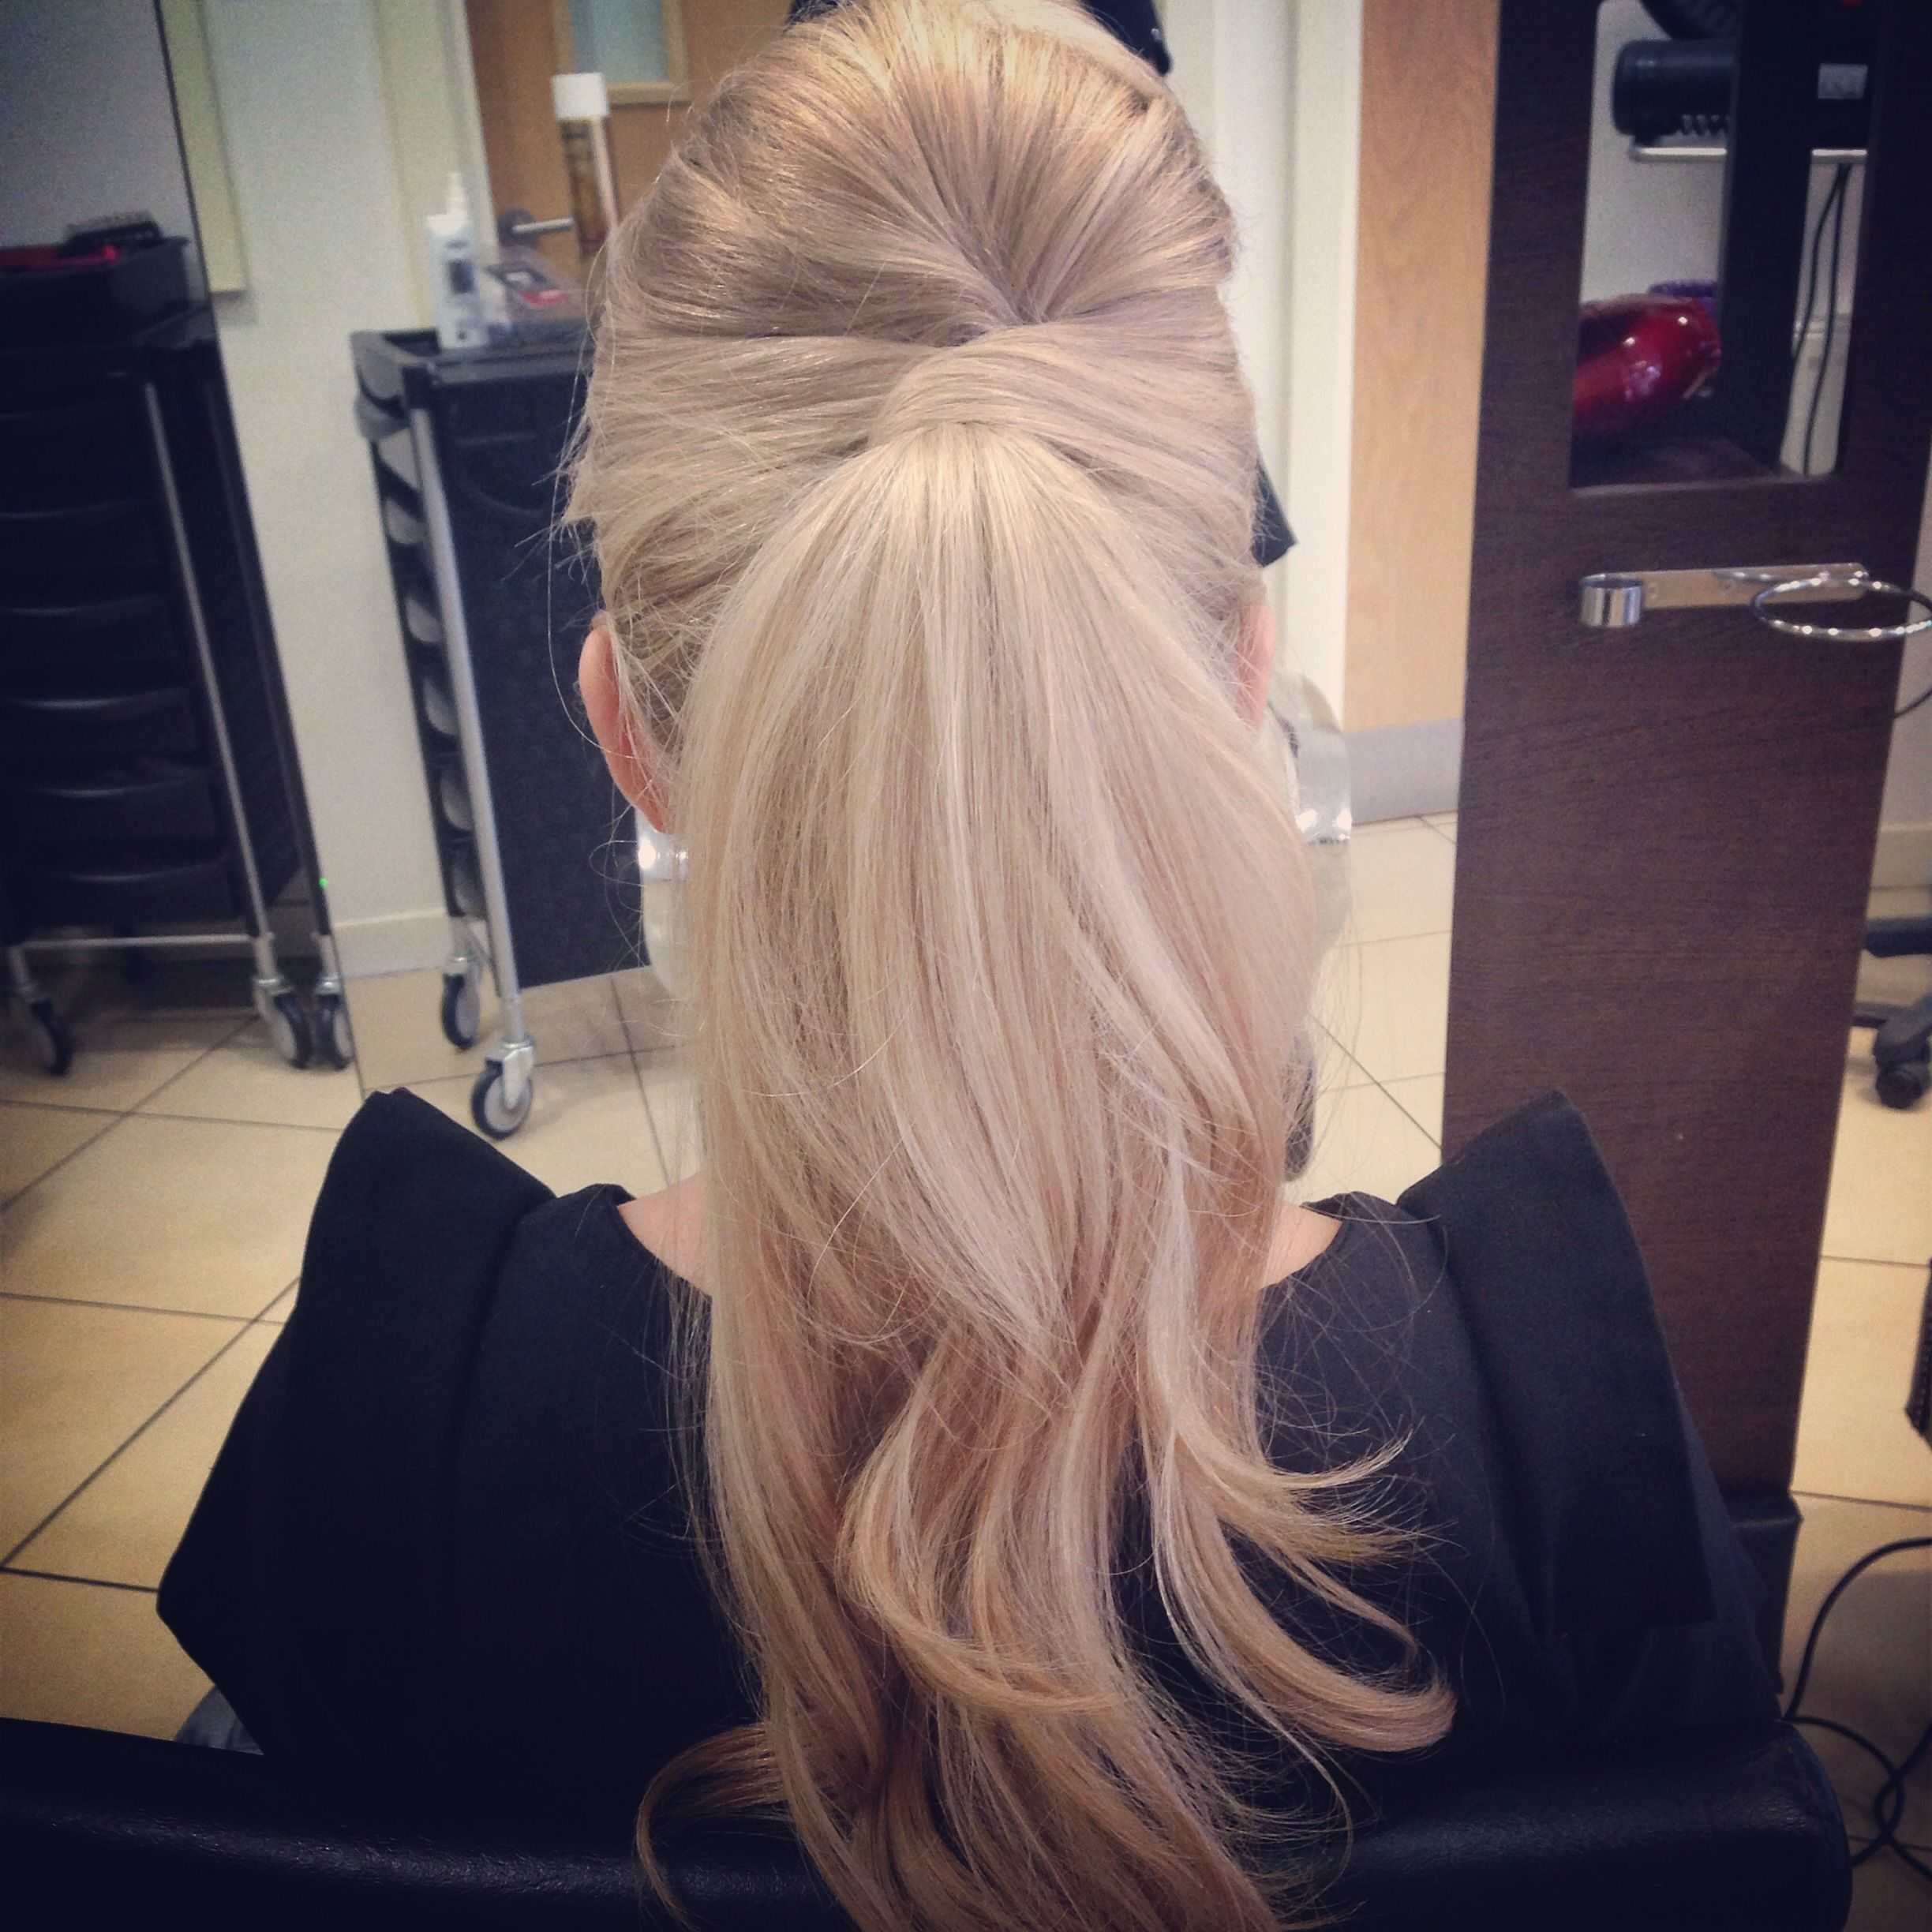 Updo for long hair, curly ponytail